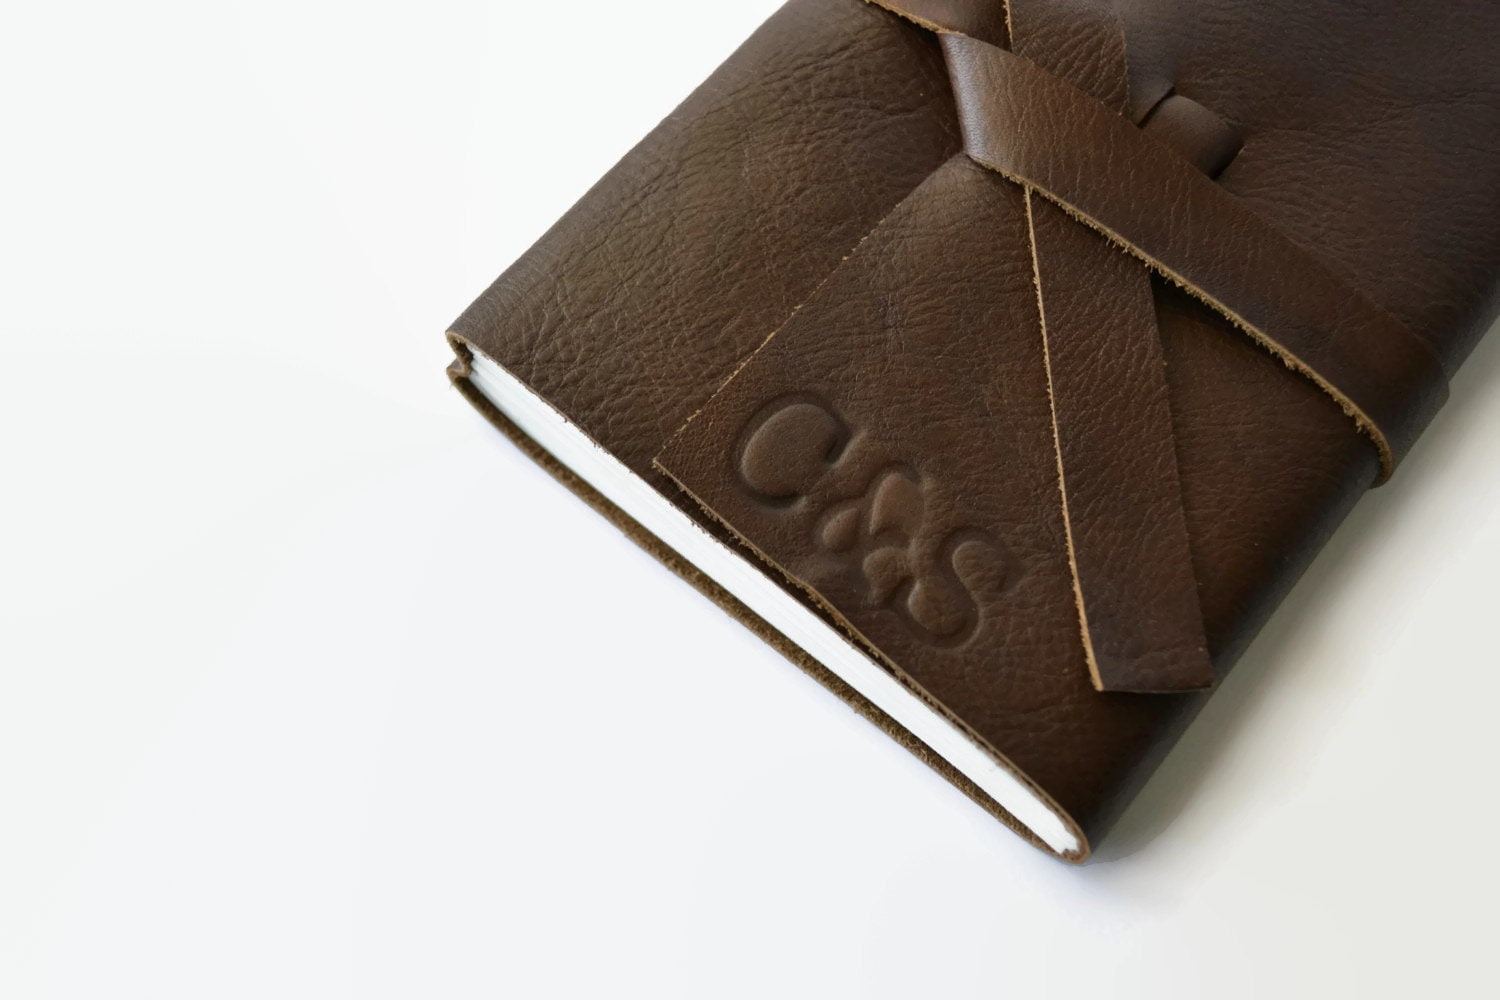 3rd Wedding Anniversary Gift For Husband: Personalized Anniversary Gift Leather Journal Leather